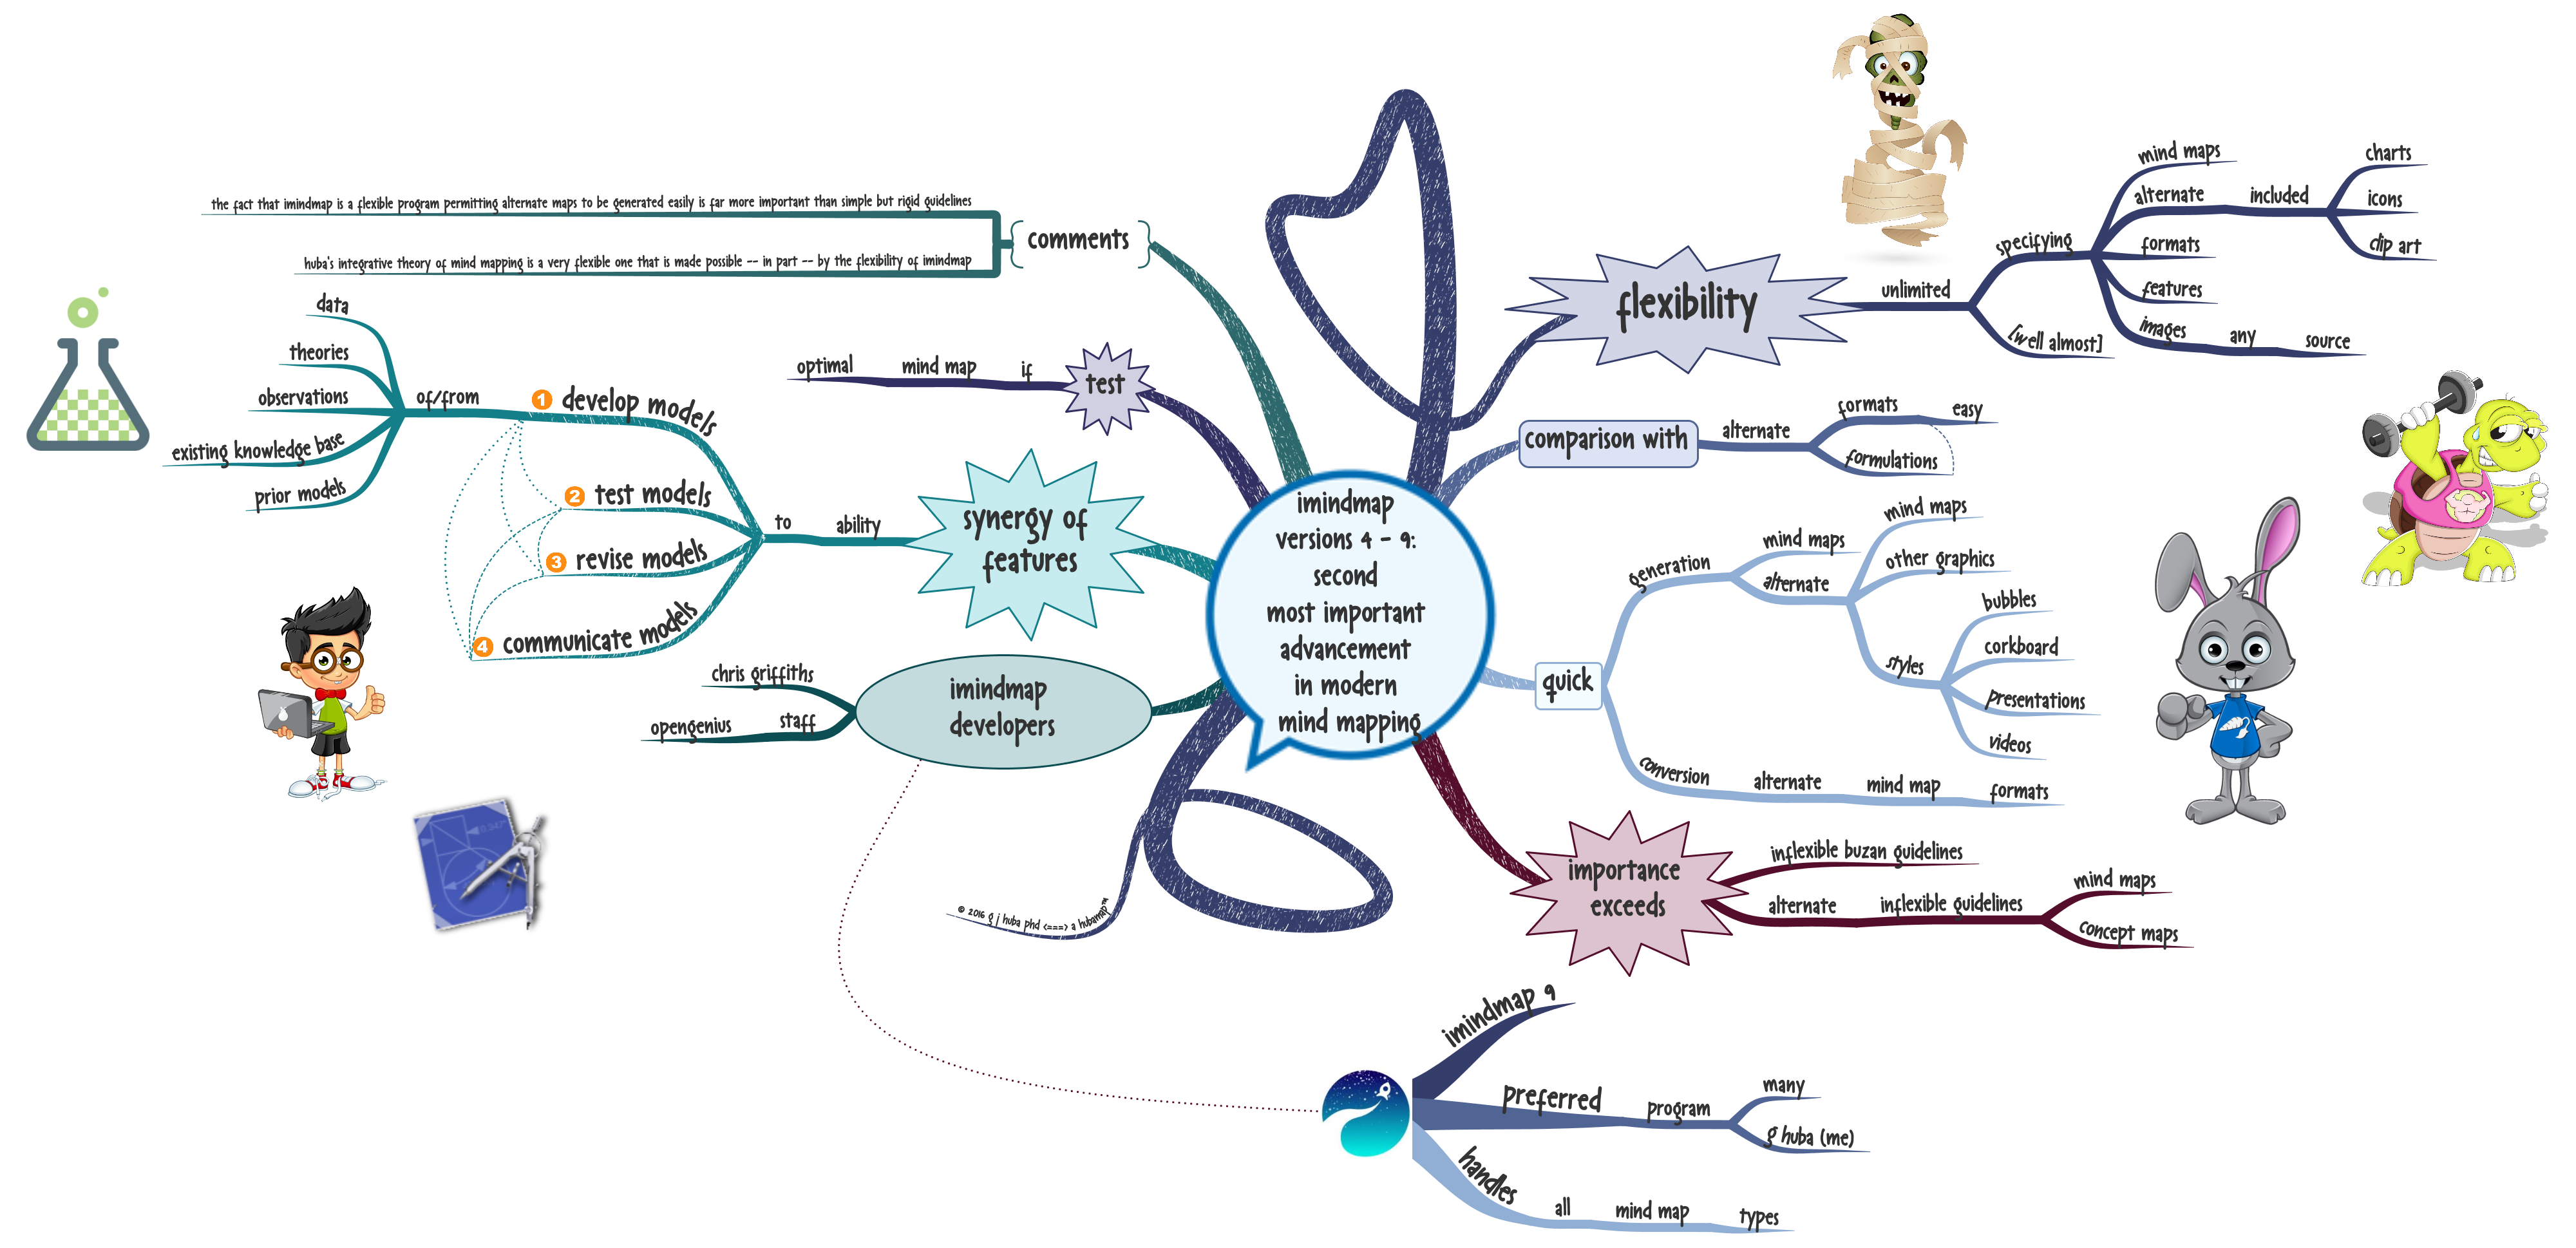 imindmap versions 4 9 second most important advancement in modern mind mapping - Bubblus Mind Map